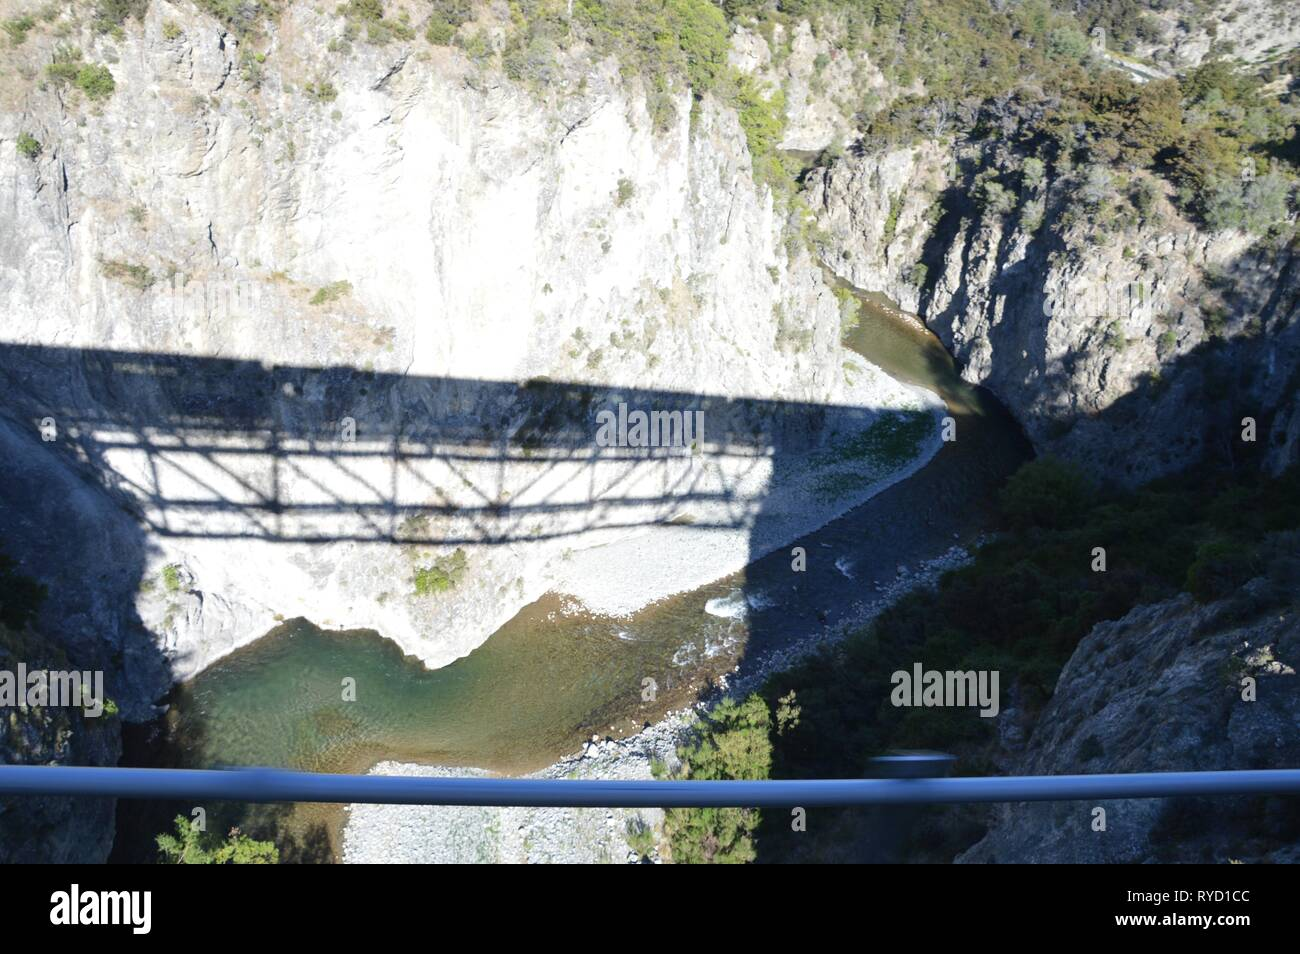 Train bridges in the New Zealand Alps seen from the Tranzalpine - Stock Image